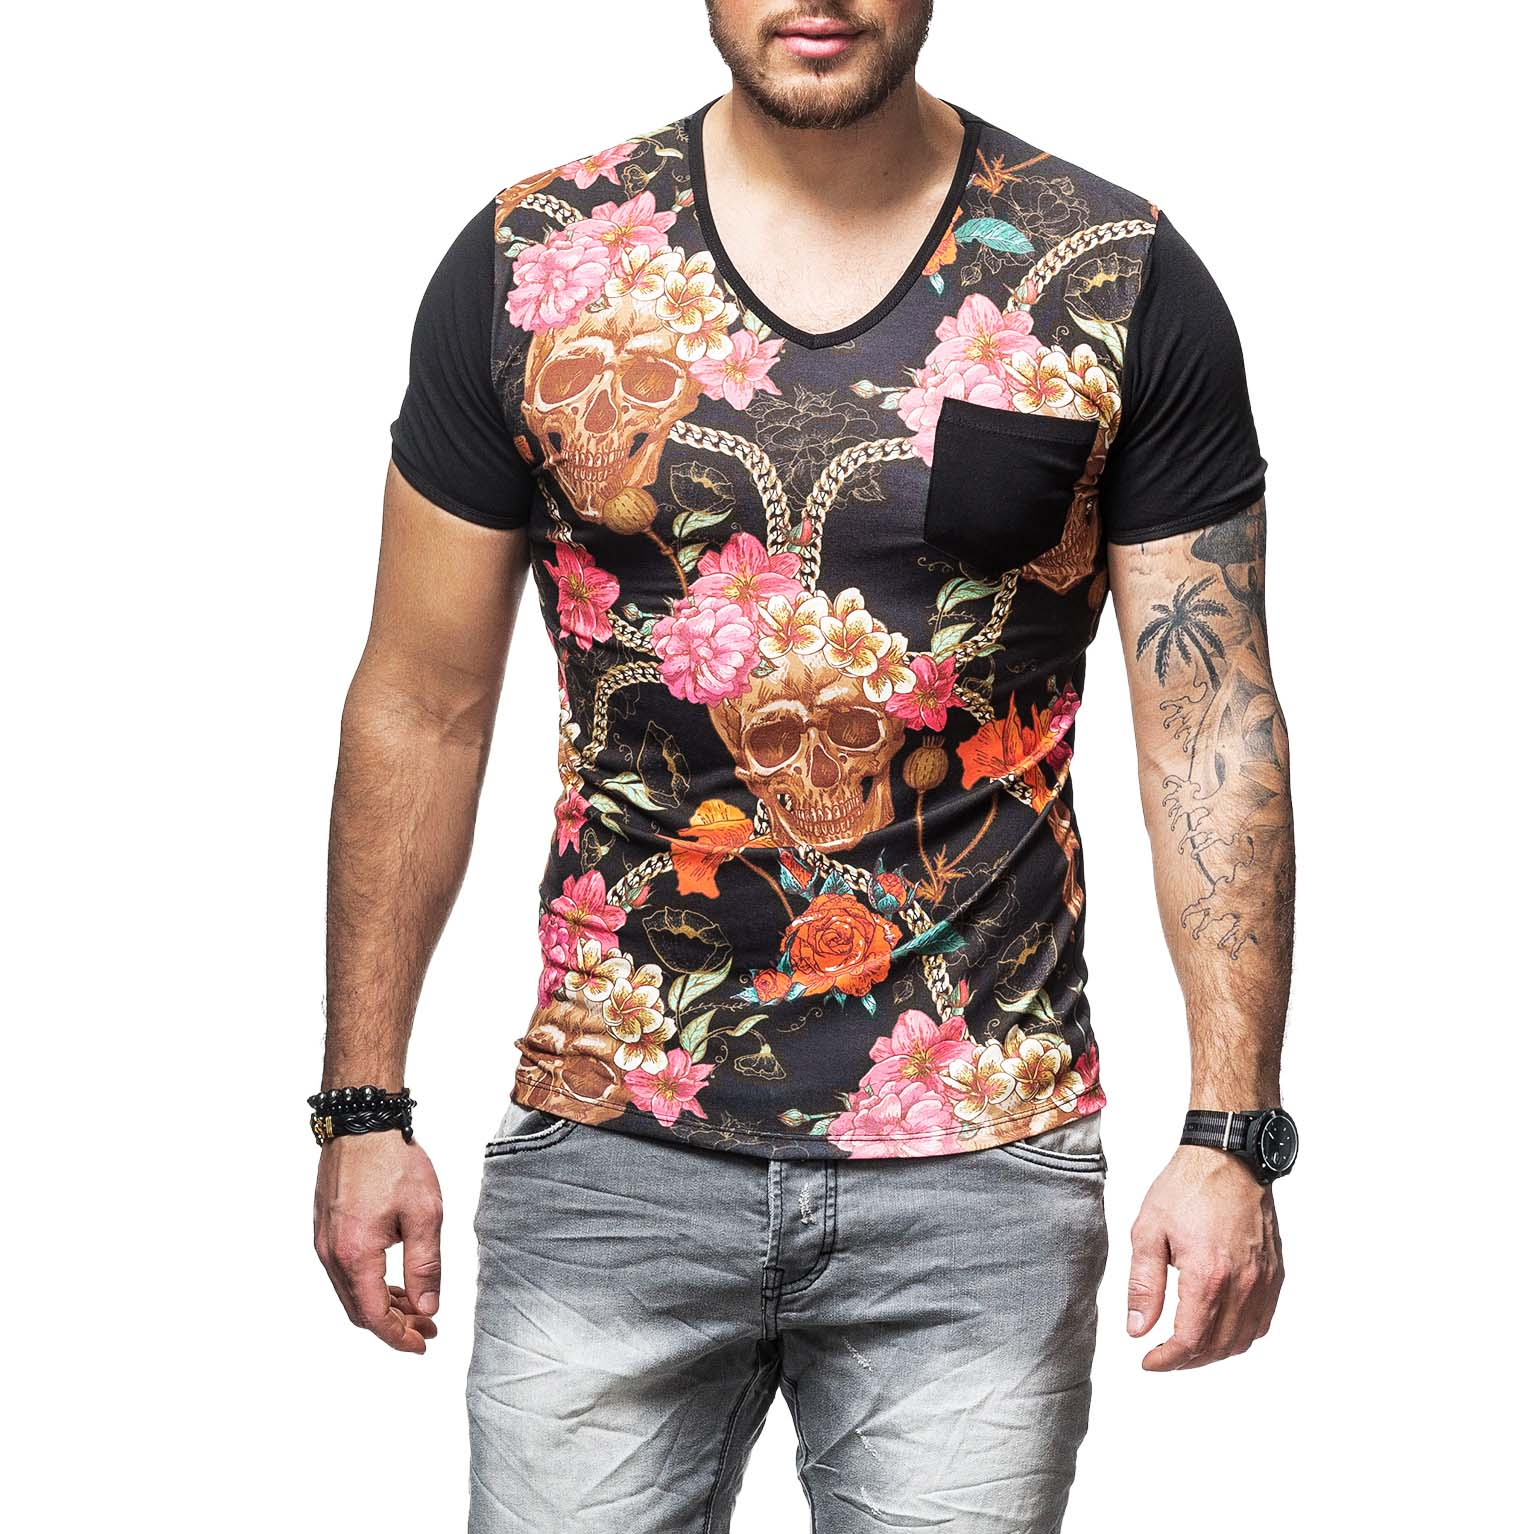 t shirt homme fleurs t te de mort 486. Black Bedroom Furniture Sets. Home Design Ideas